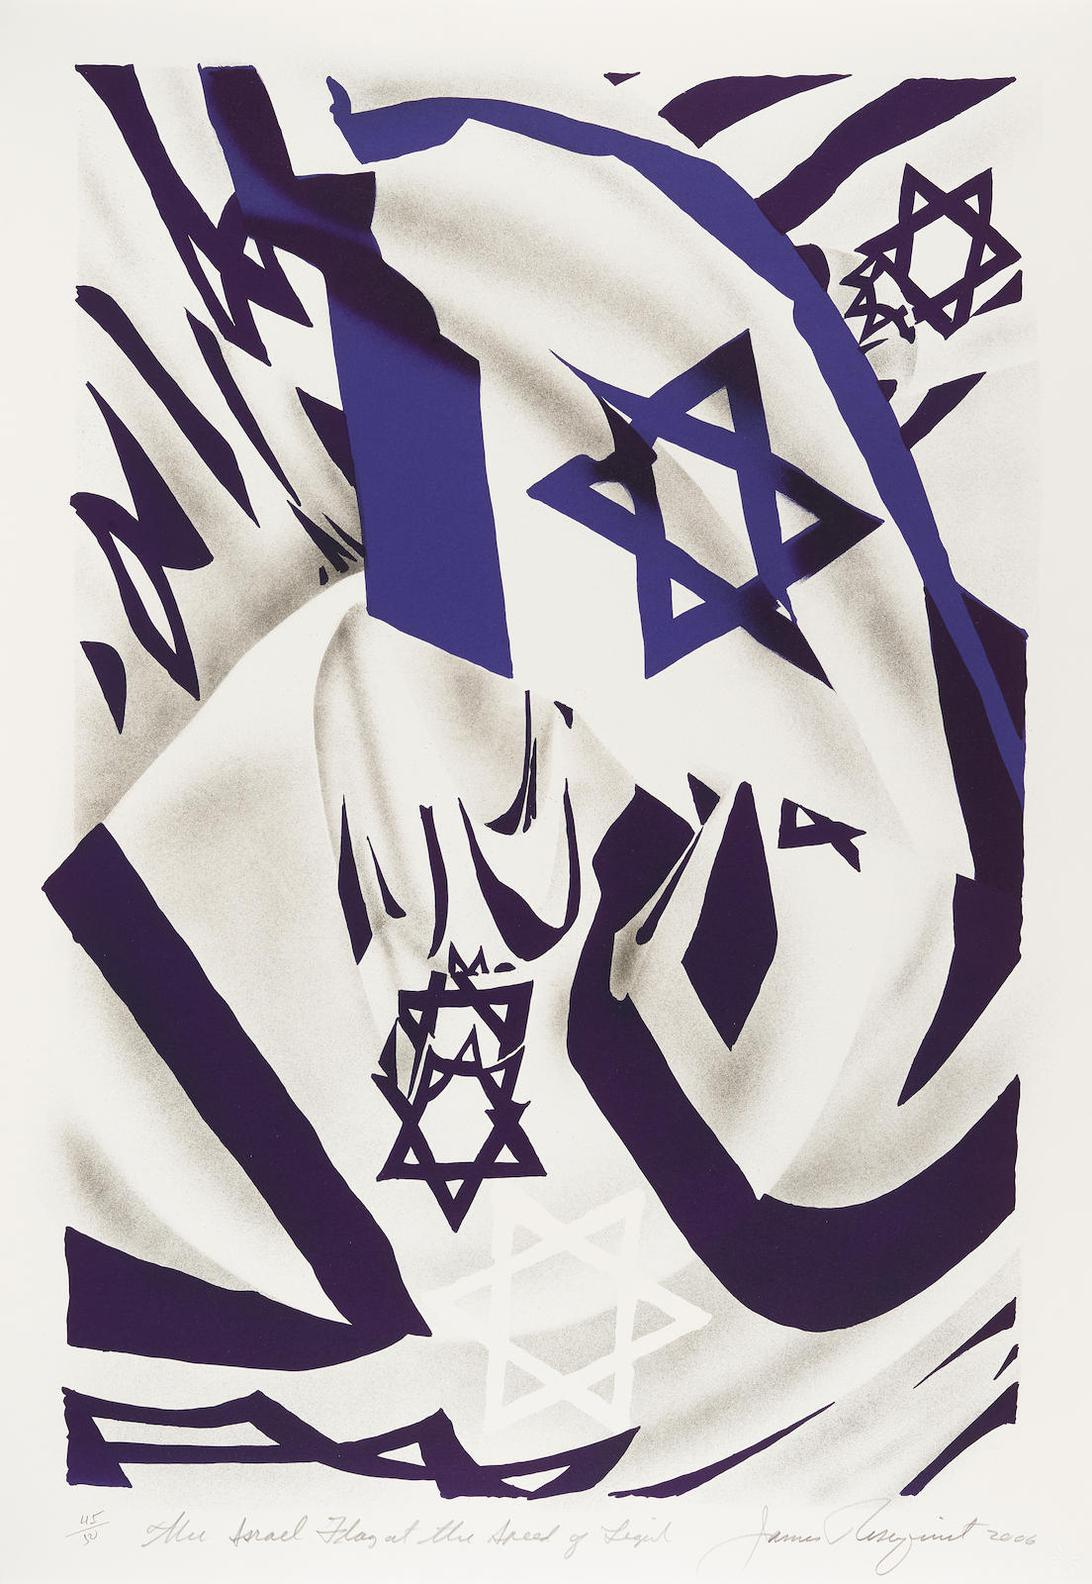 James Rosenquist-Israel Flag At The Speed Of Light-2006